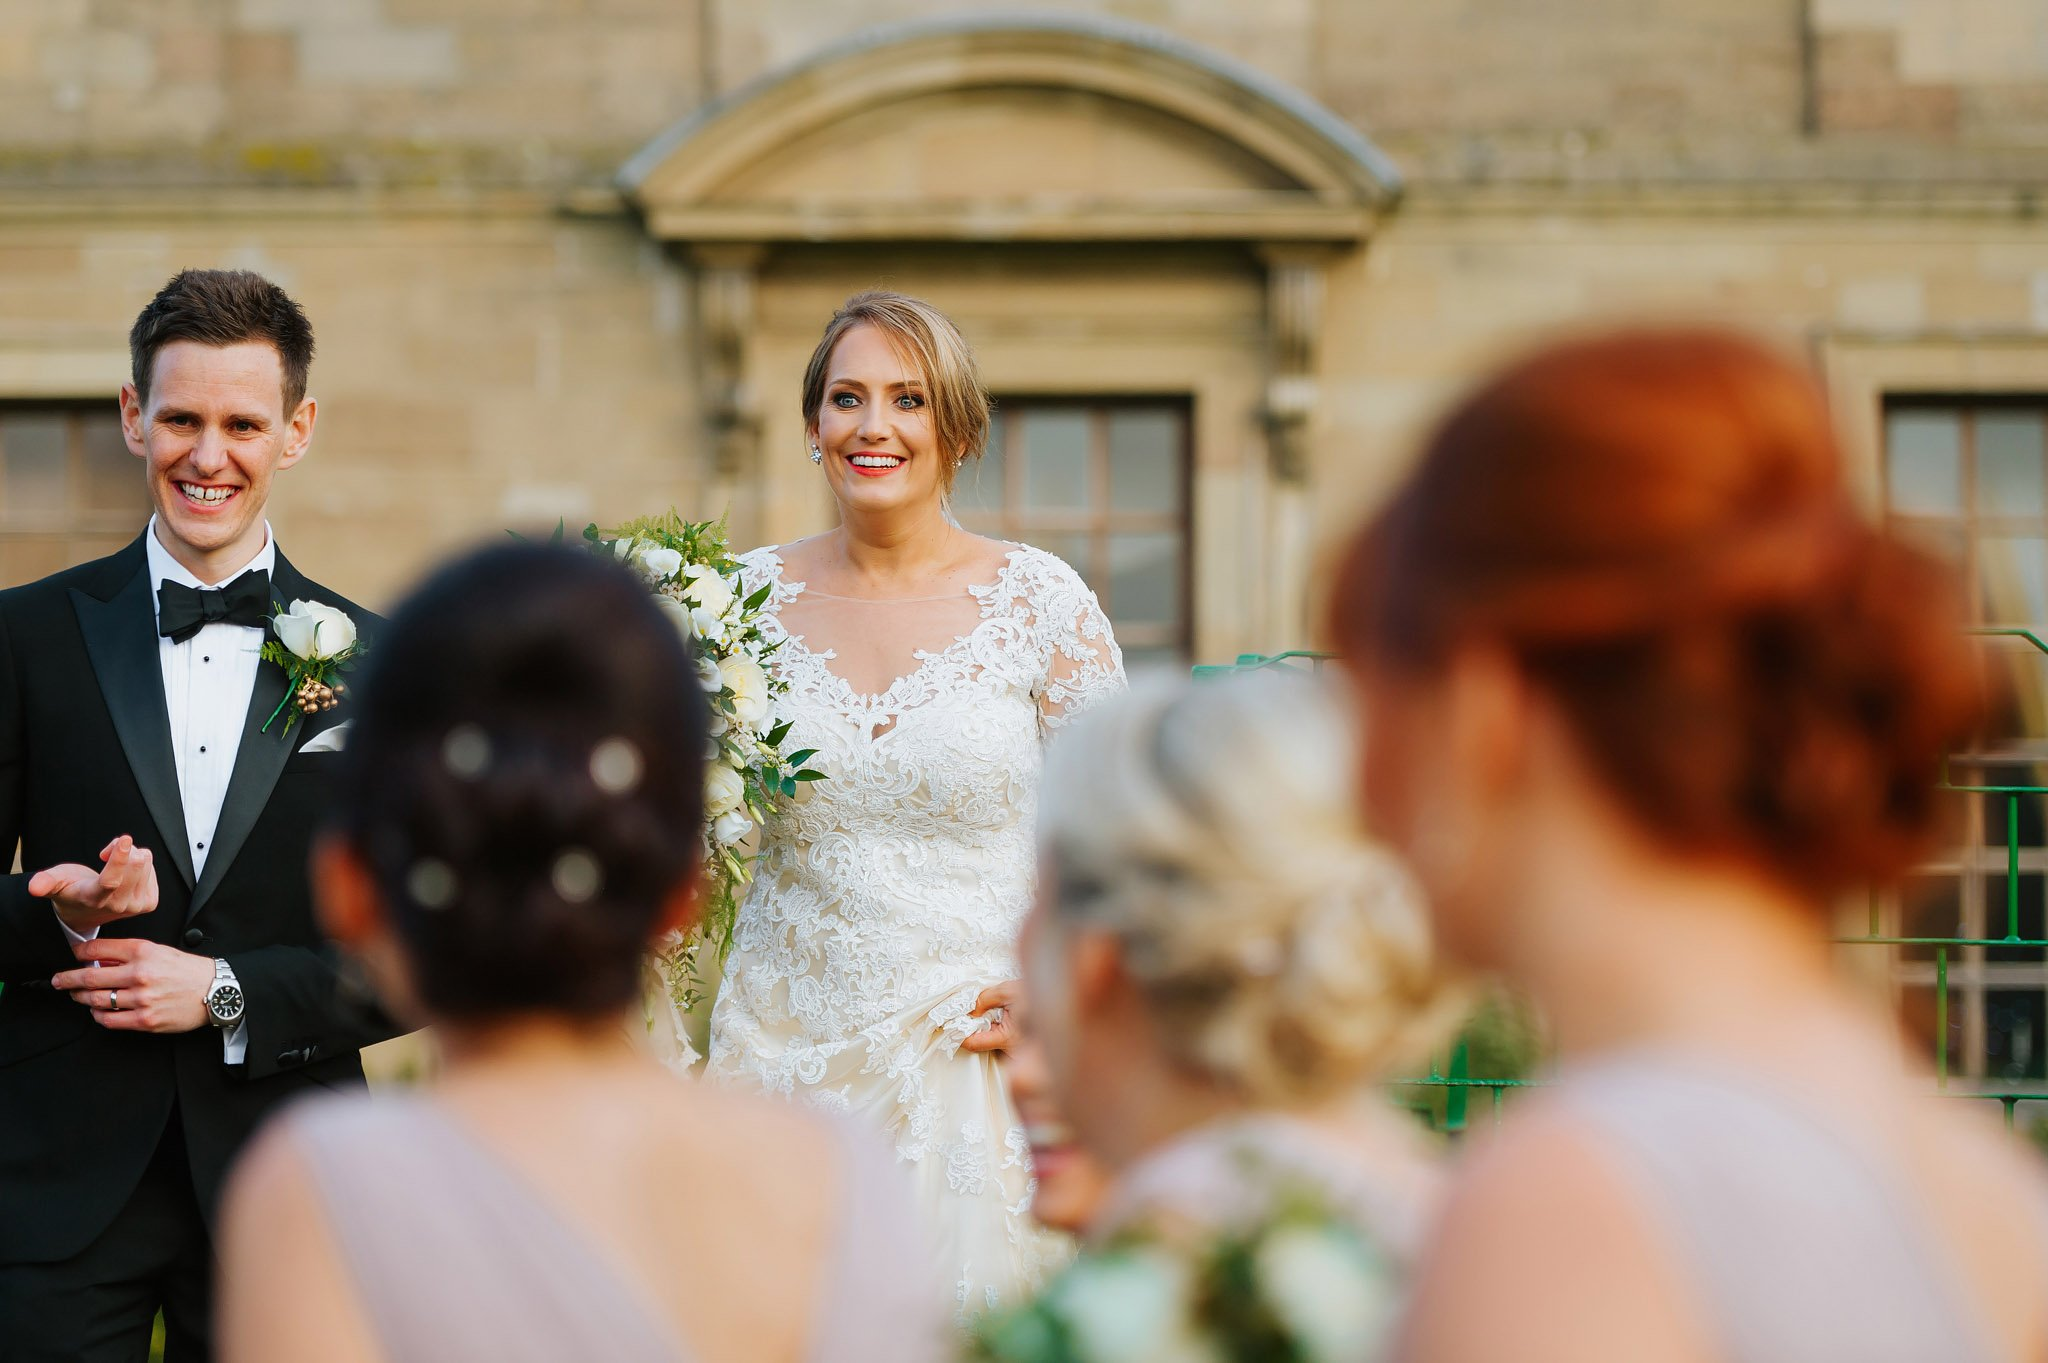 coombe abbey wedding coventry 96 - Coombe Abbey wedding in Coventry, Warwickshire - Sam + Matt